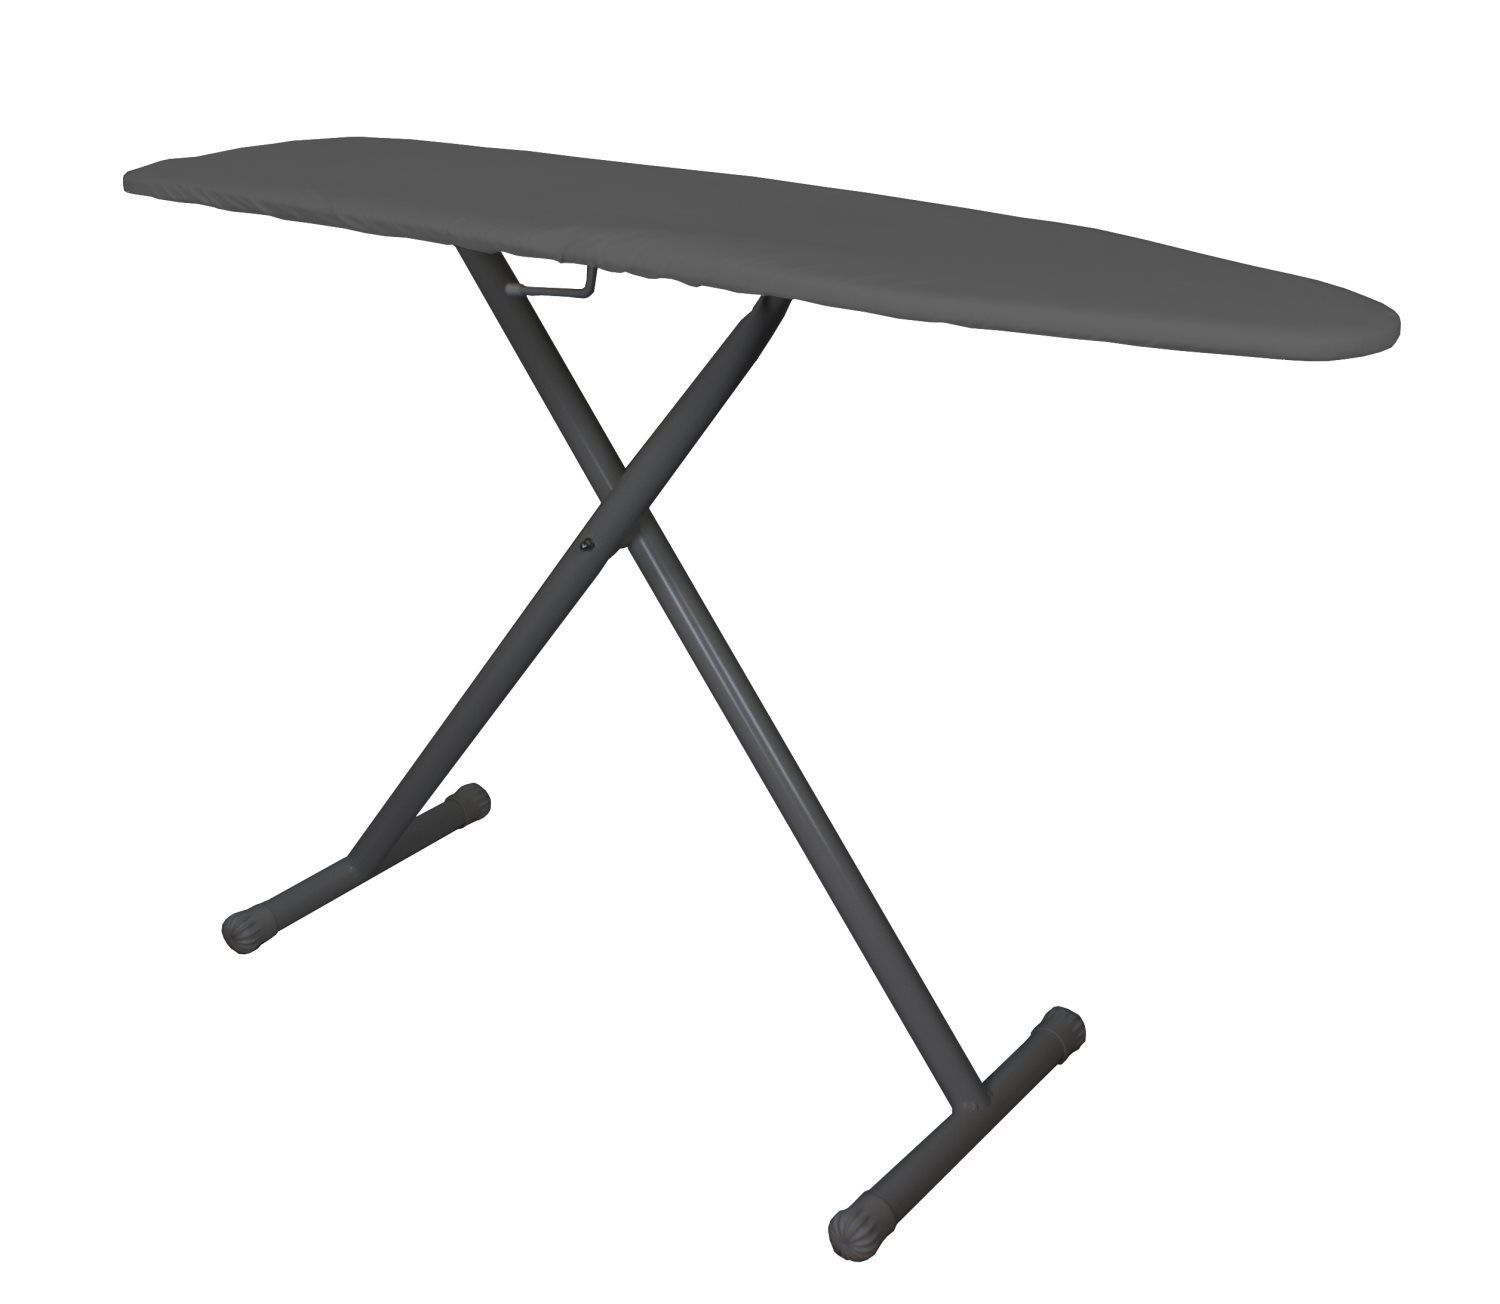 Presstige Ironing Board- Charcoal Cover/Black Legs